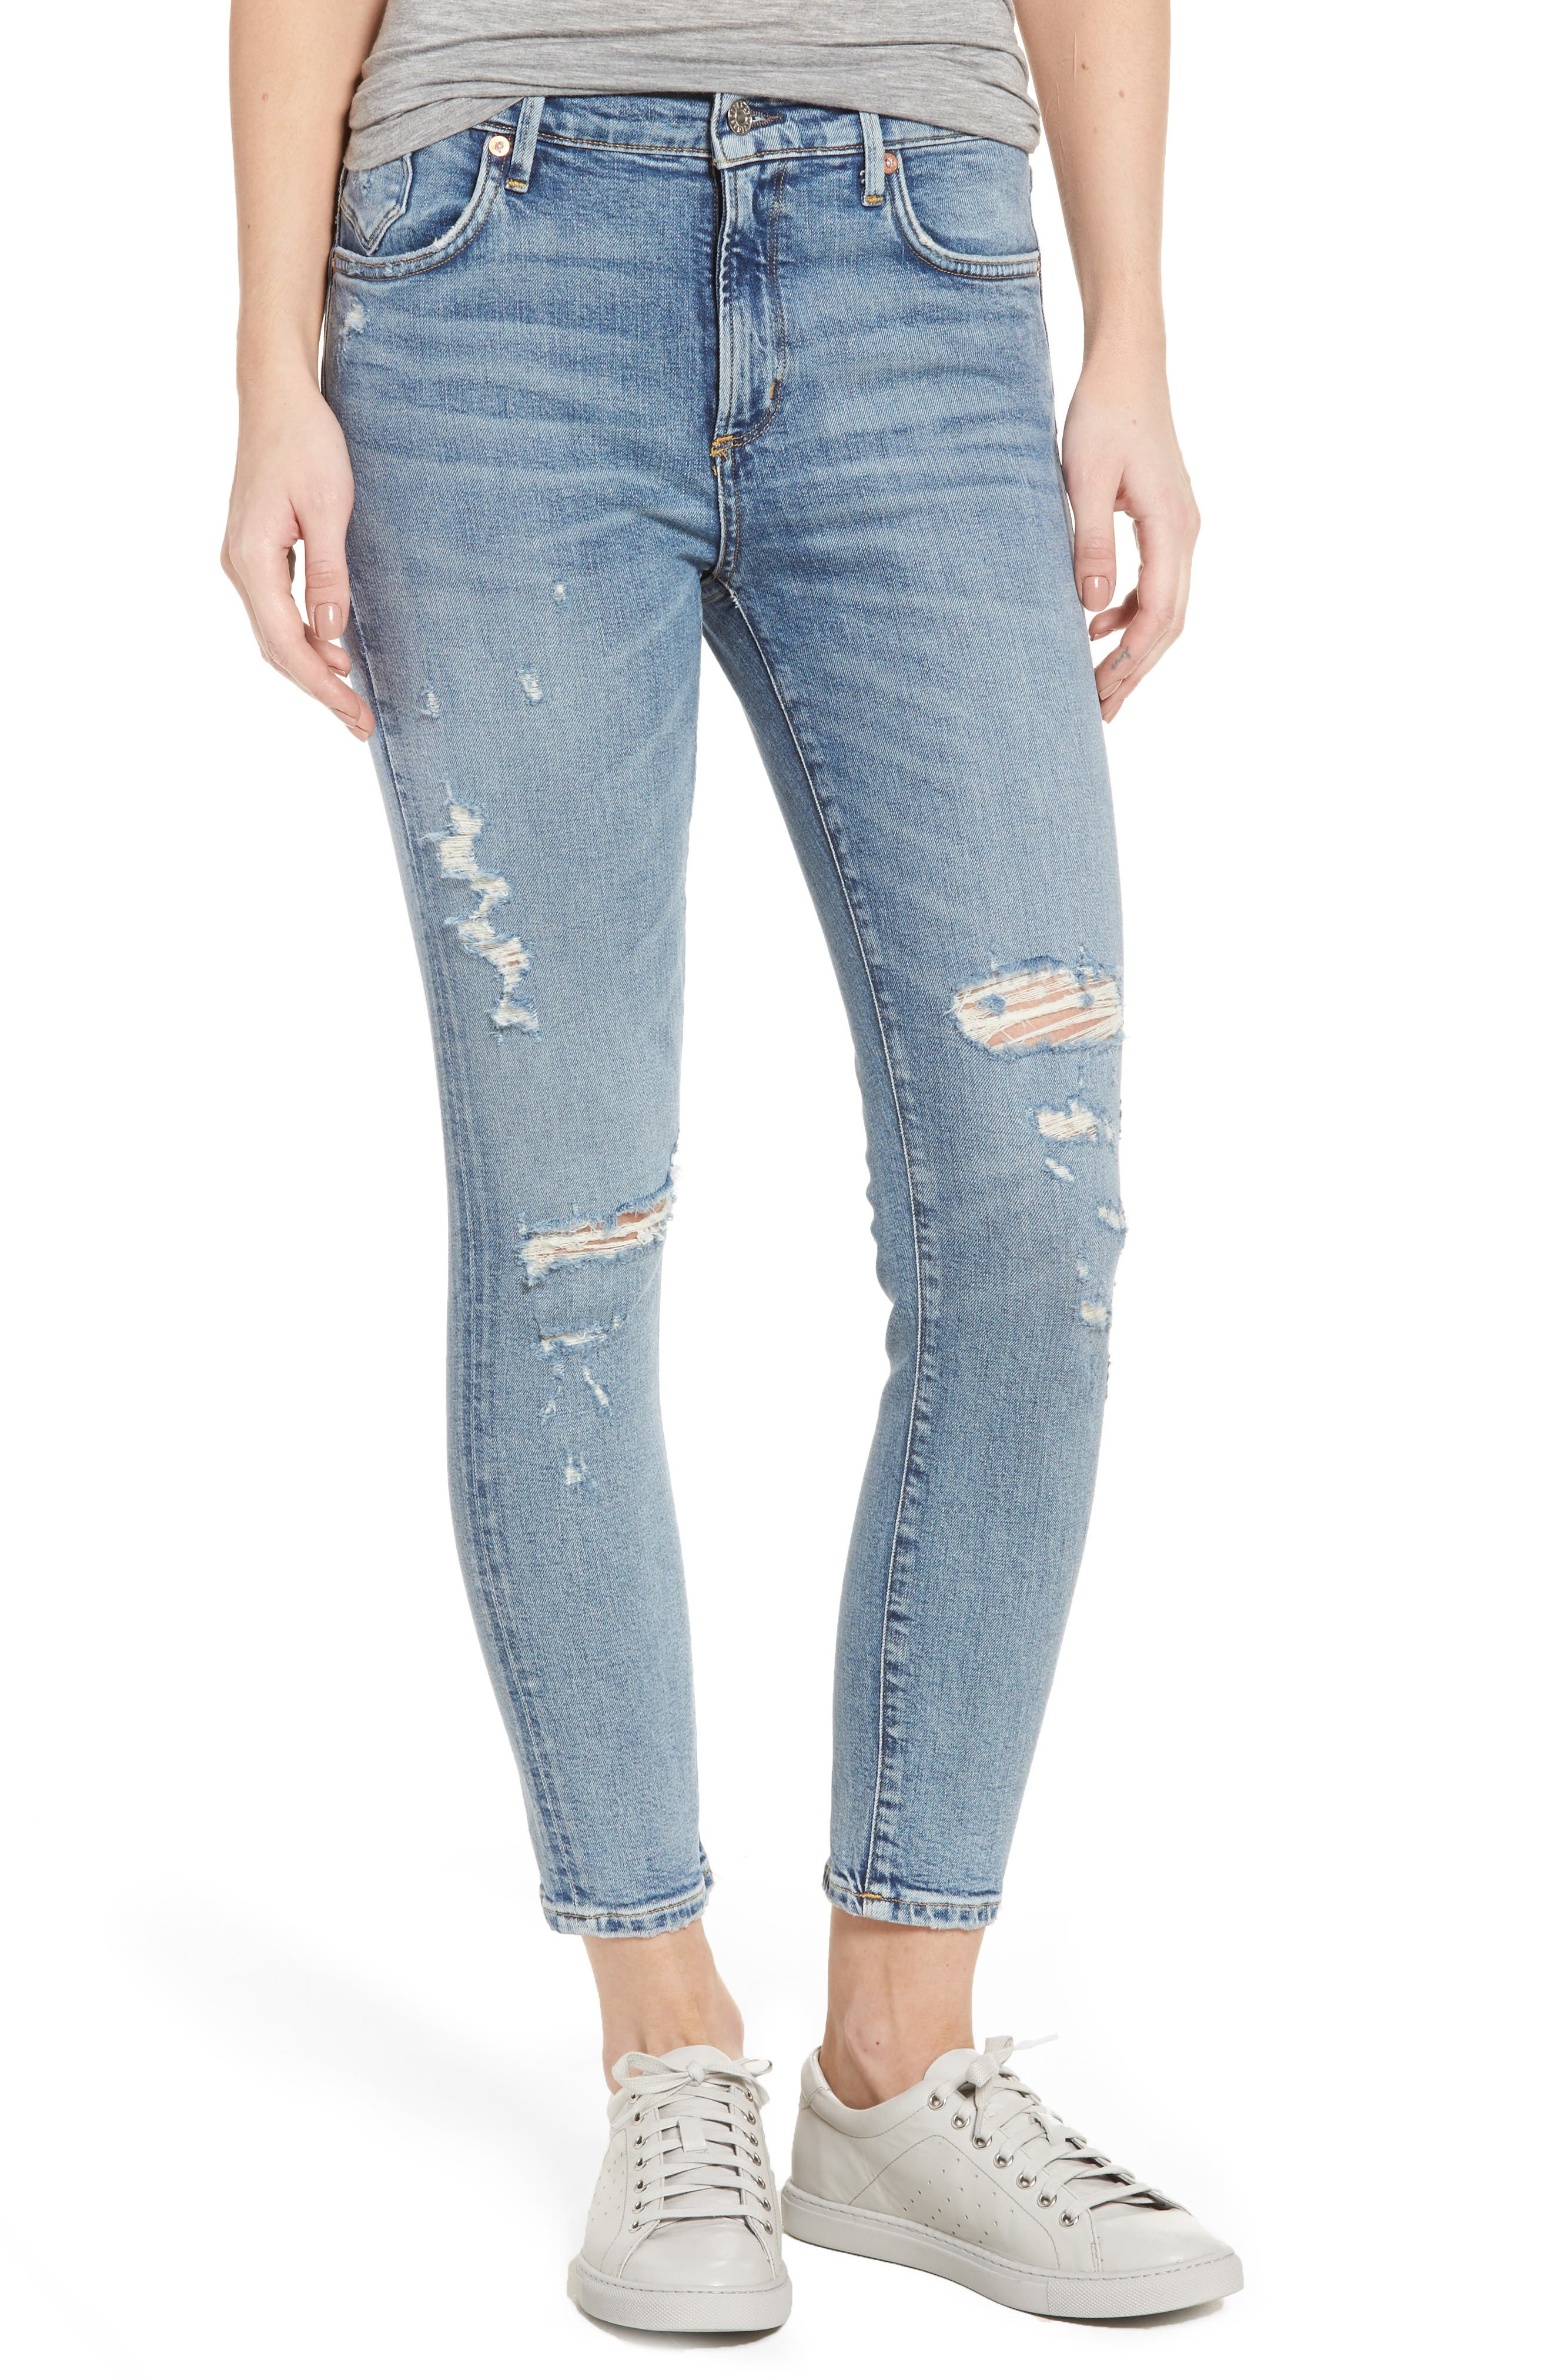 Alternate Image 1 Selected - AGOLDE Sophie Distressed High Waist Skinny Jeans (Outsider)